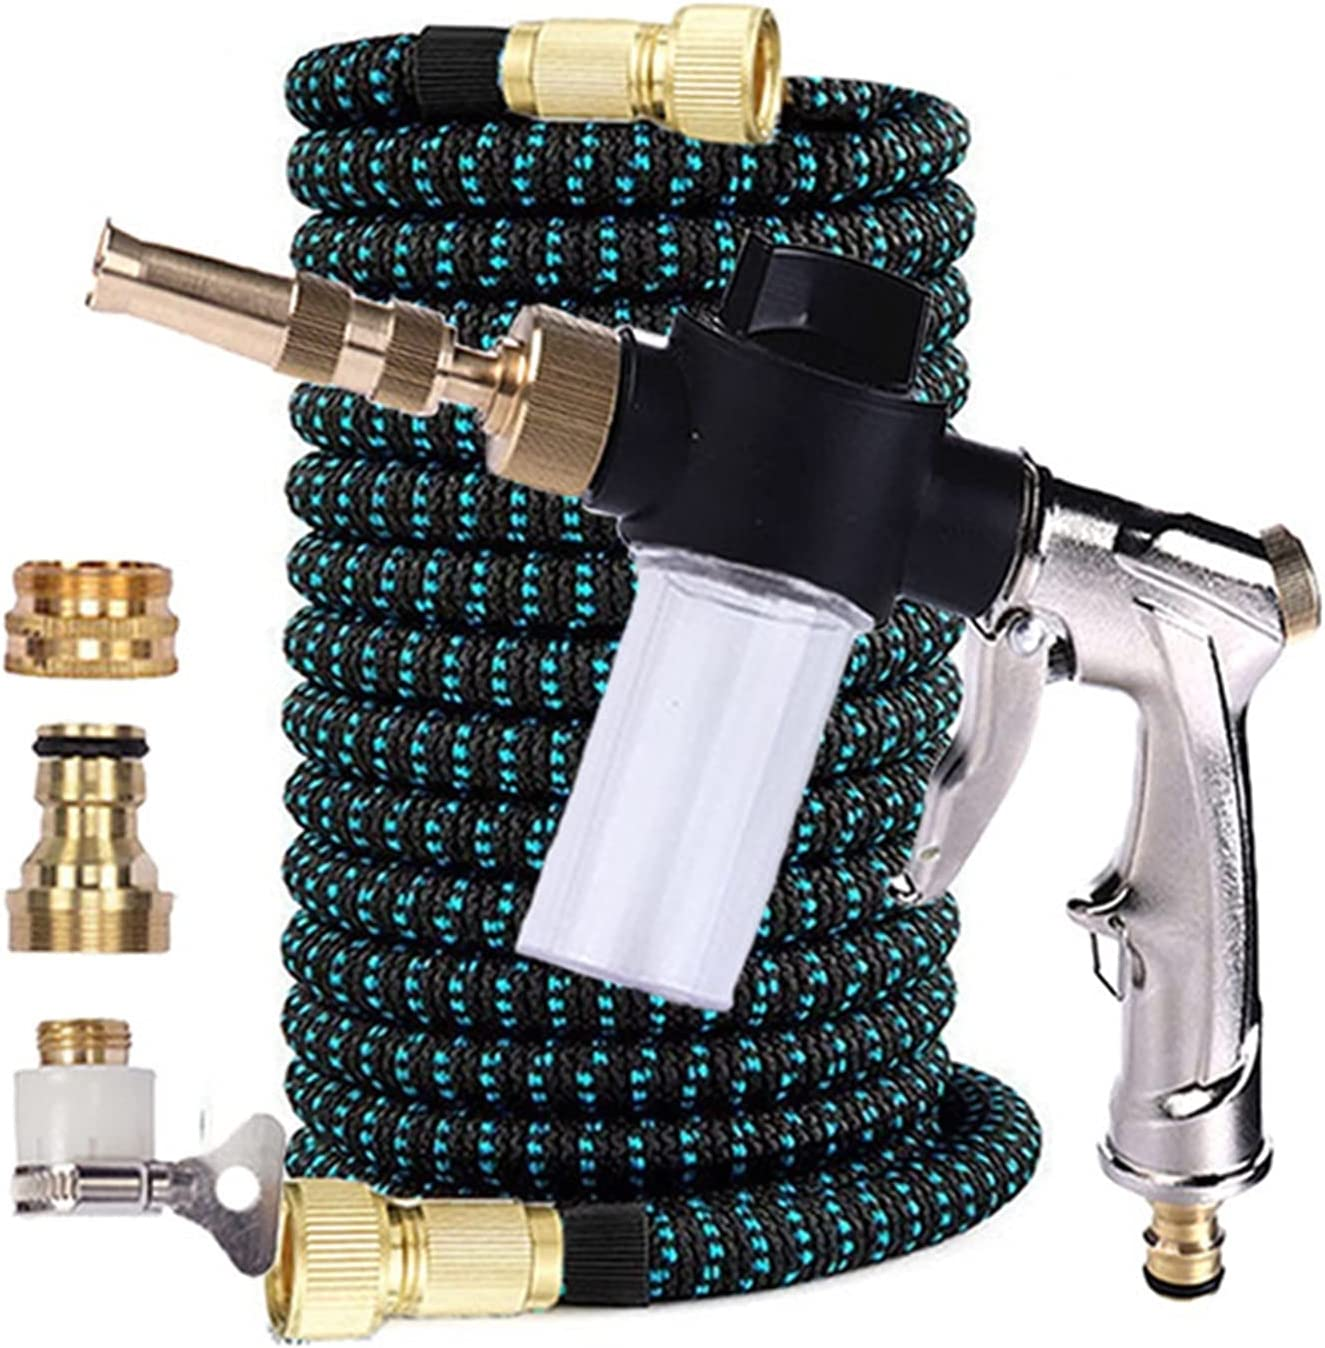 TMP1105 Expandable Free shipping on posting reviews Home Garden Water Was Hose Pressure High Super-cheap Car